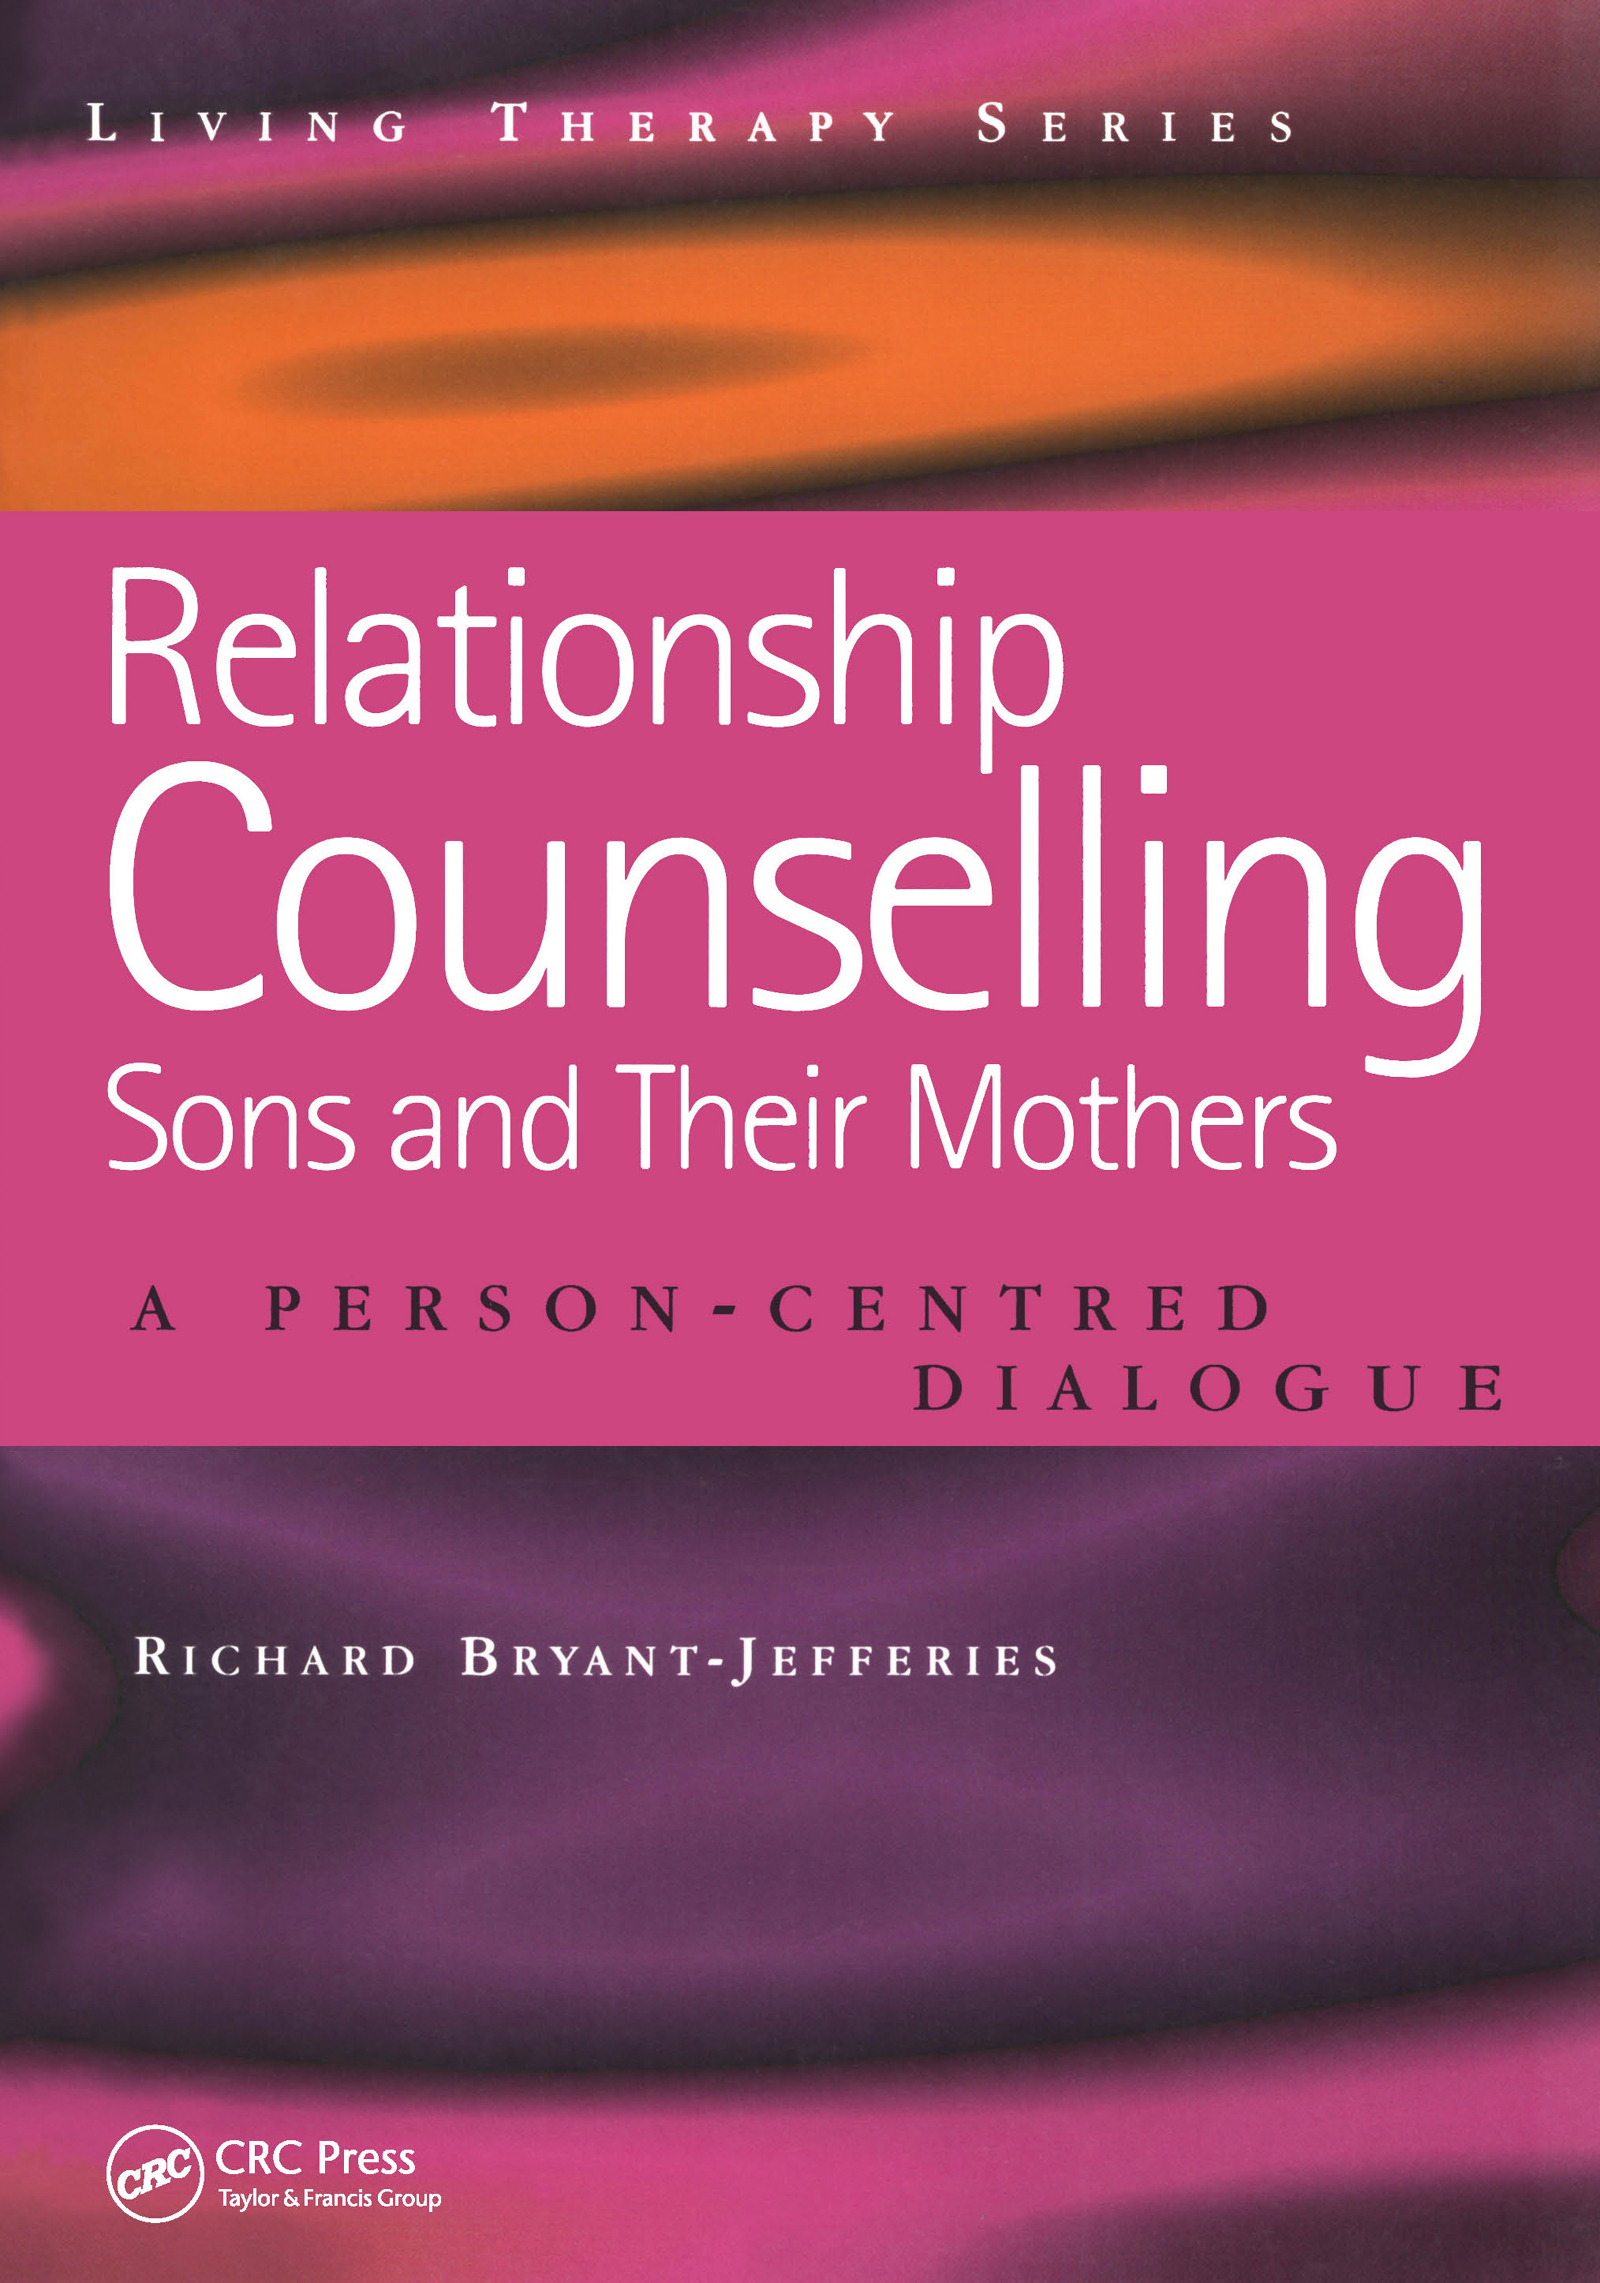 Relationship Counselling - Sons and Their Mothers: A Person-Centred Dialogue book cover